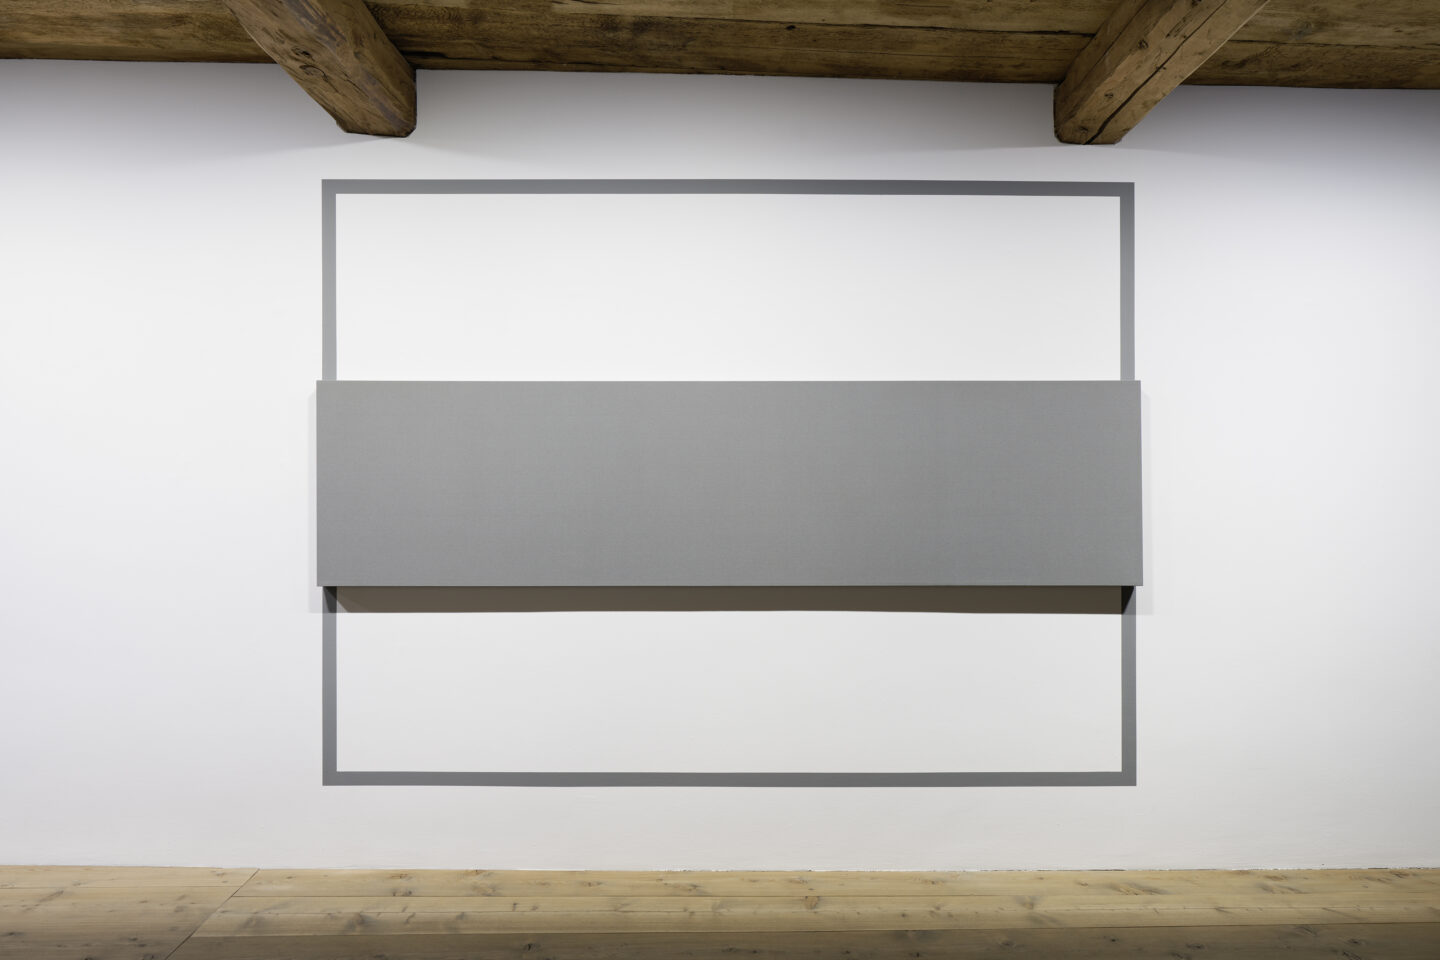 Exhibition View Alan Charlton Soloshow «It Started with a Chameleon; view on Outline Painting, 2004» at Galerie Tschudi, Zuoz, 2019 / Photo: Ralph Feiner, Malans / courtesy: the artist and Galerie Tschudi